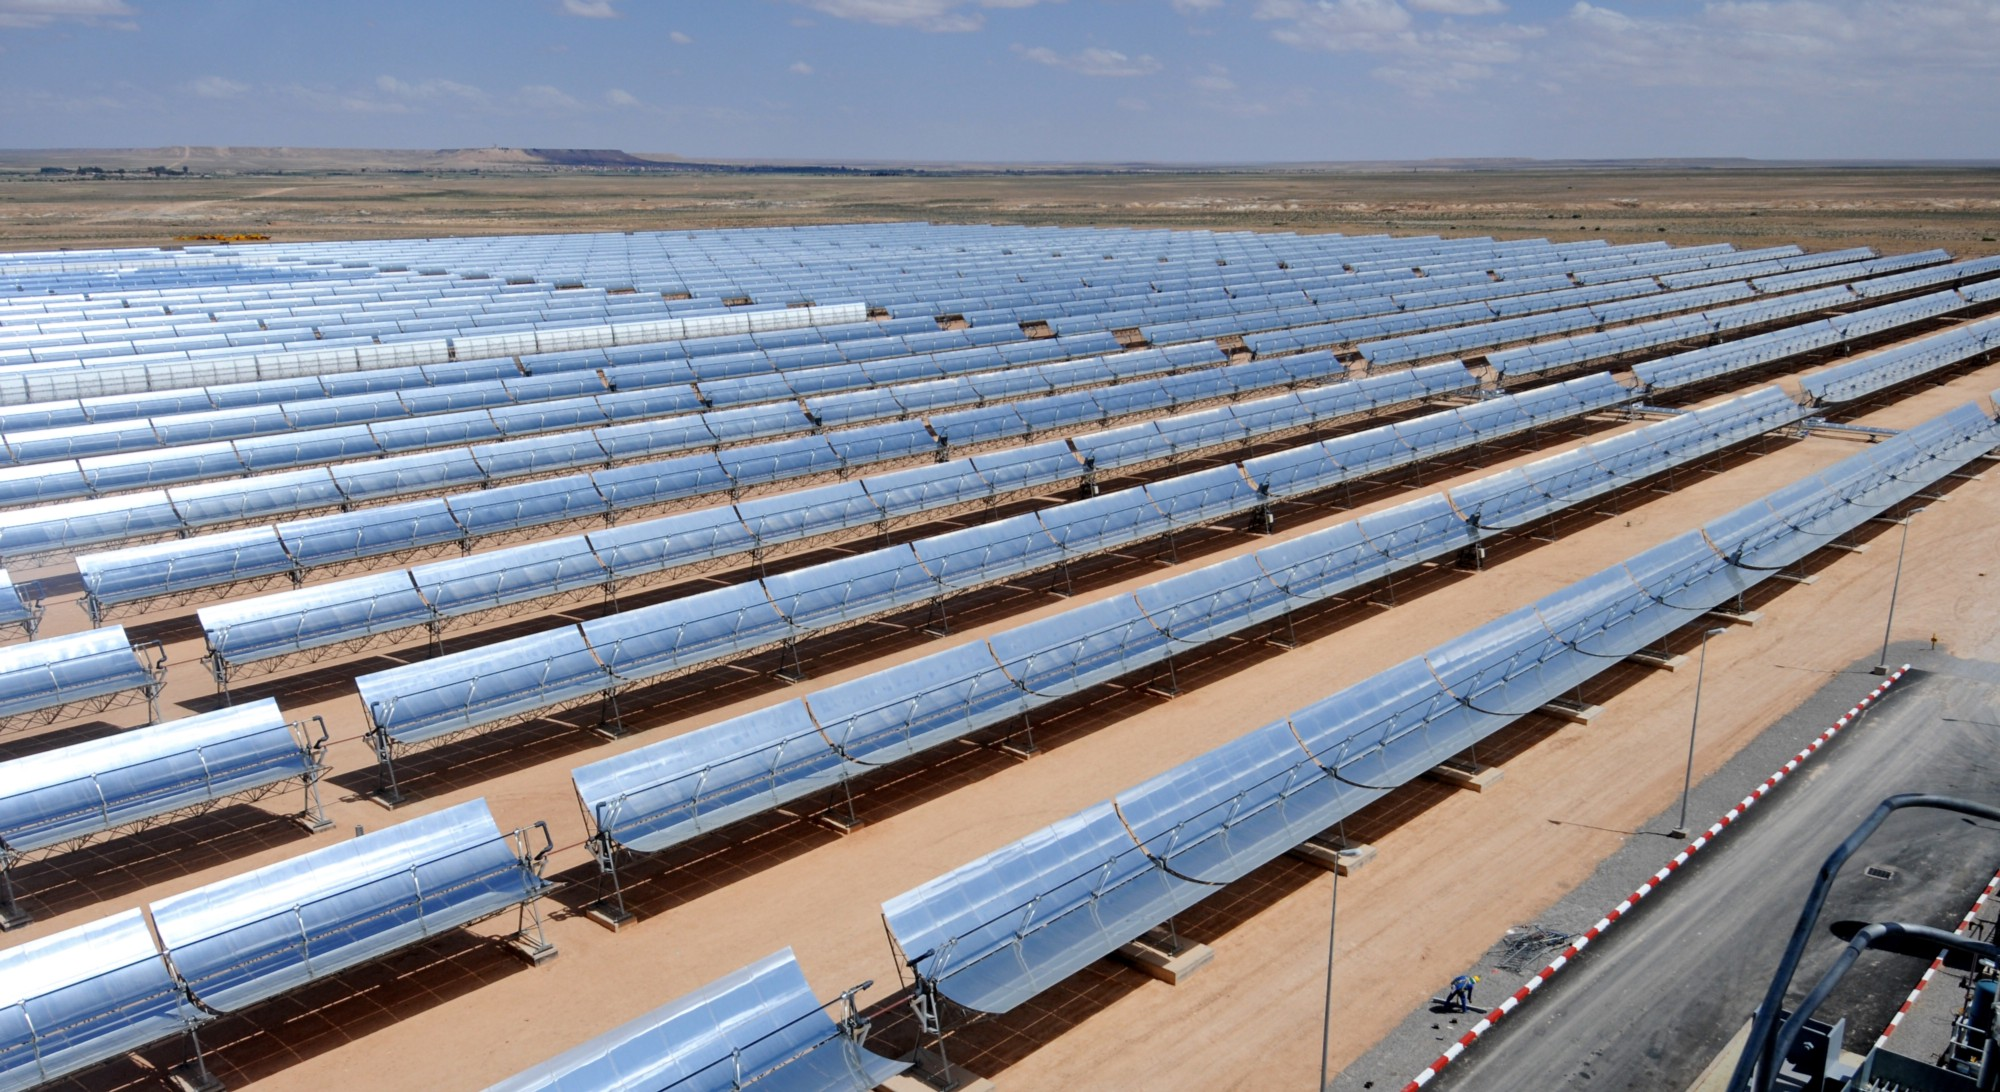 Morocco Meets Climate Goals